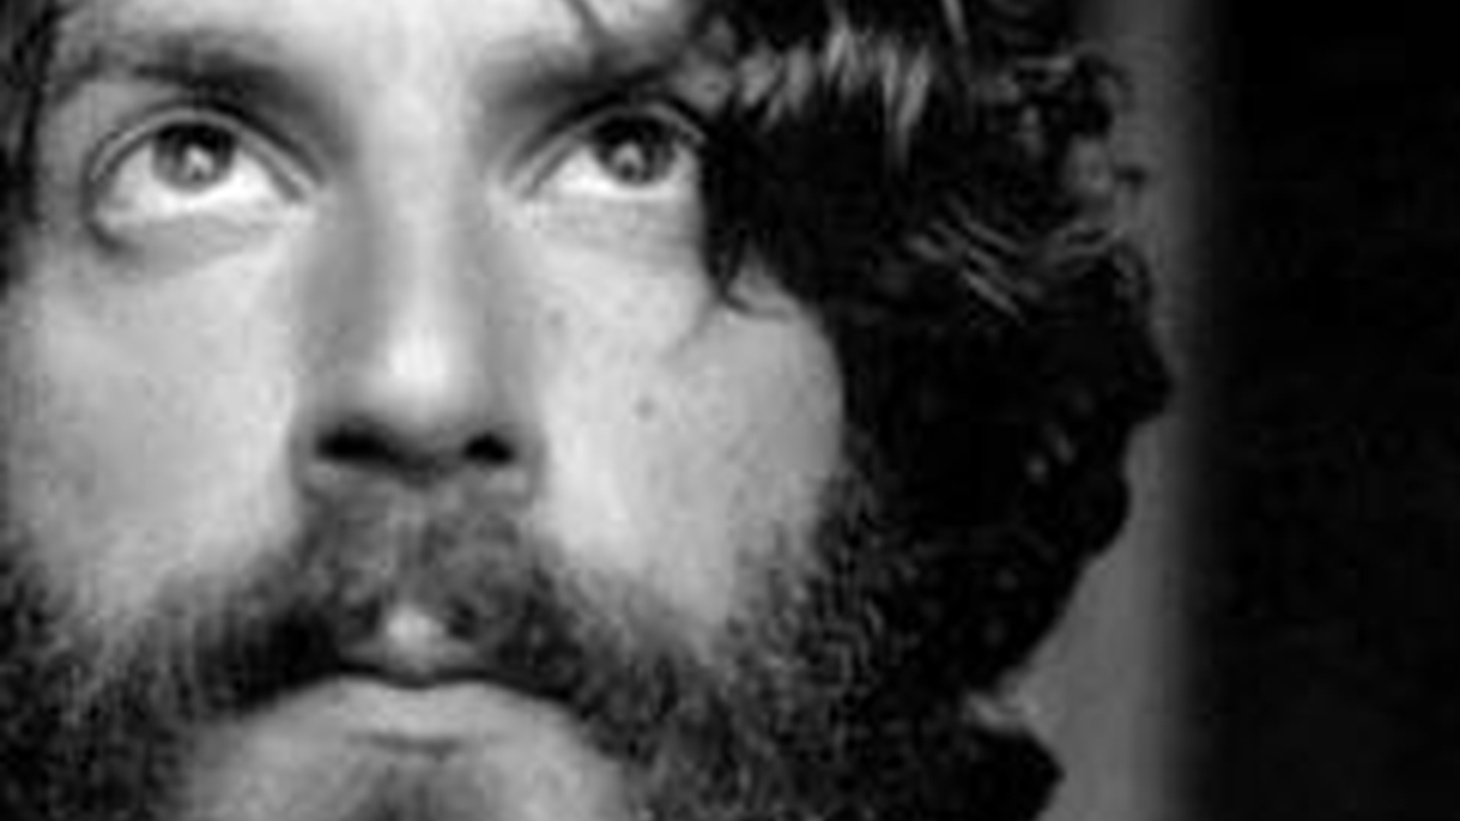 American troubadour Ray LaMontagne creates modern folk songs that are lush and earthy. Joined by his band, he performed a set of songs from his album Gossip in the Grain.